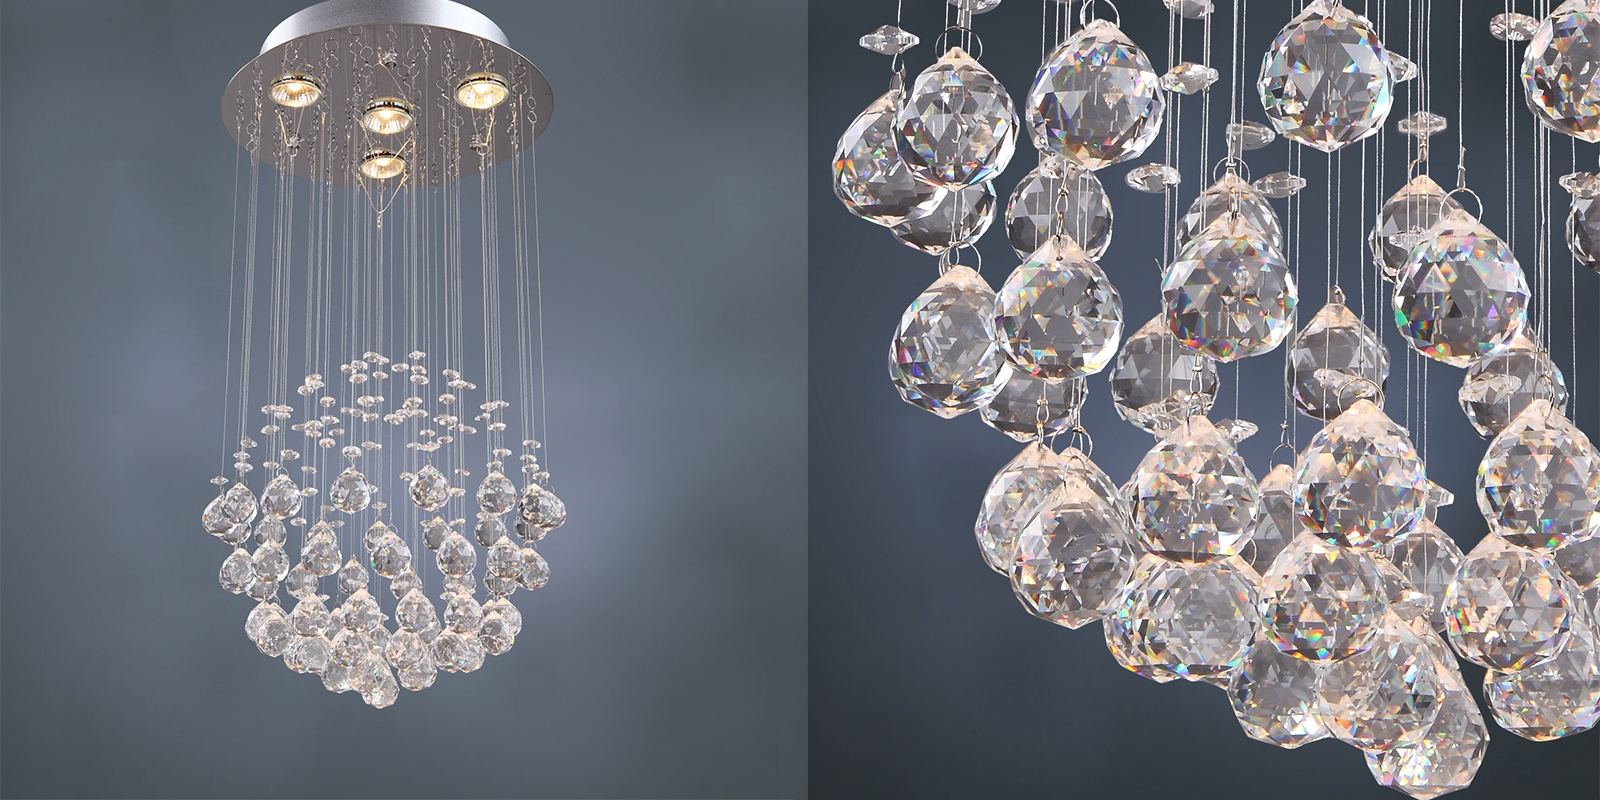 25 Best Chandeliers For 2017 For Crystal Ball Chandeliers (Image 3 of 25)